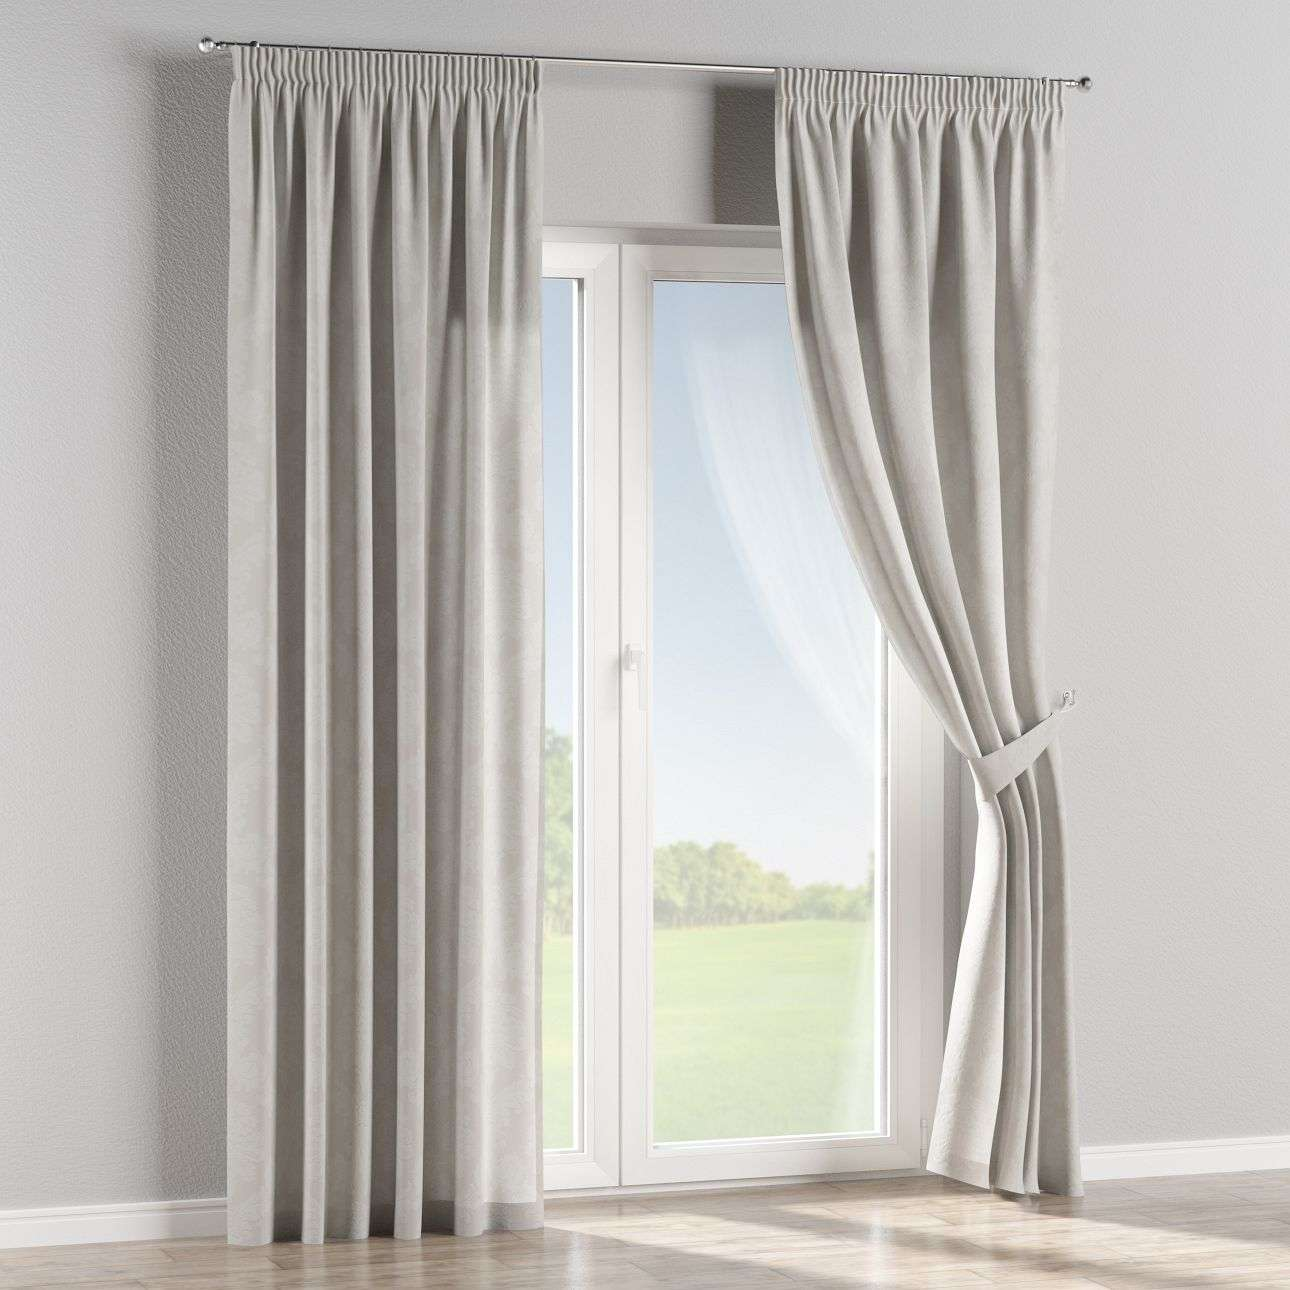 Pencil pleat curtains 130 x 260 cm (51 x 102 inch) in collection Damasco, fabric: 613-81